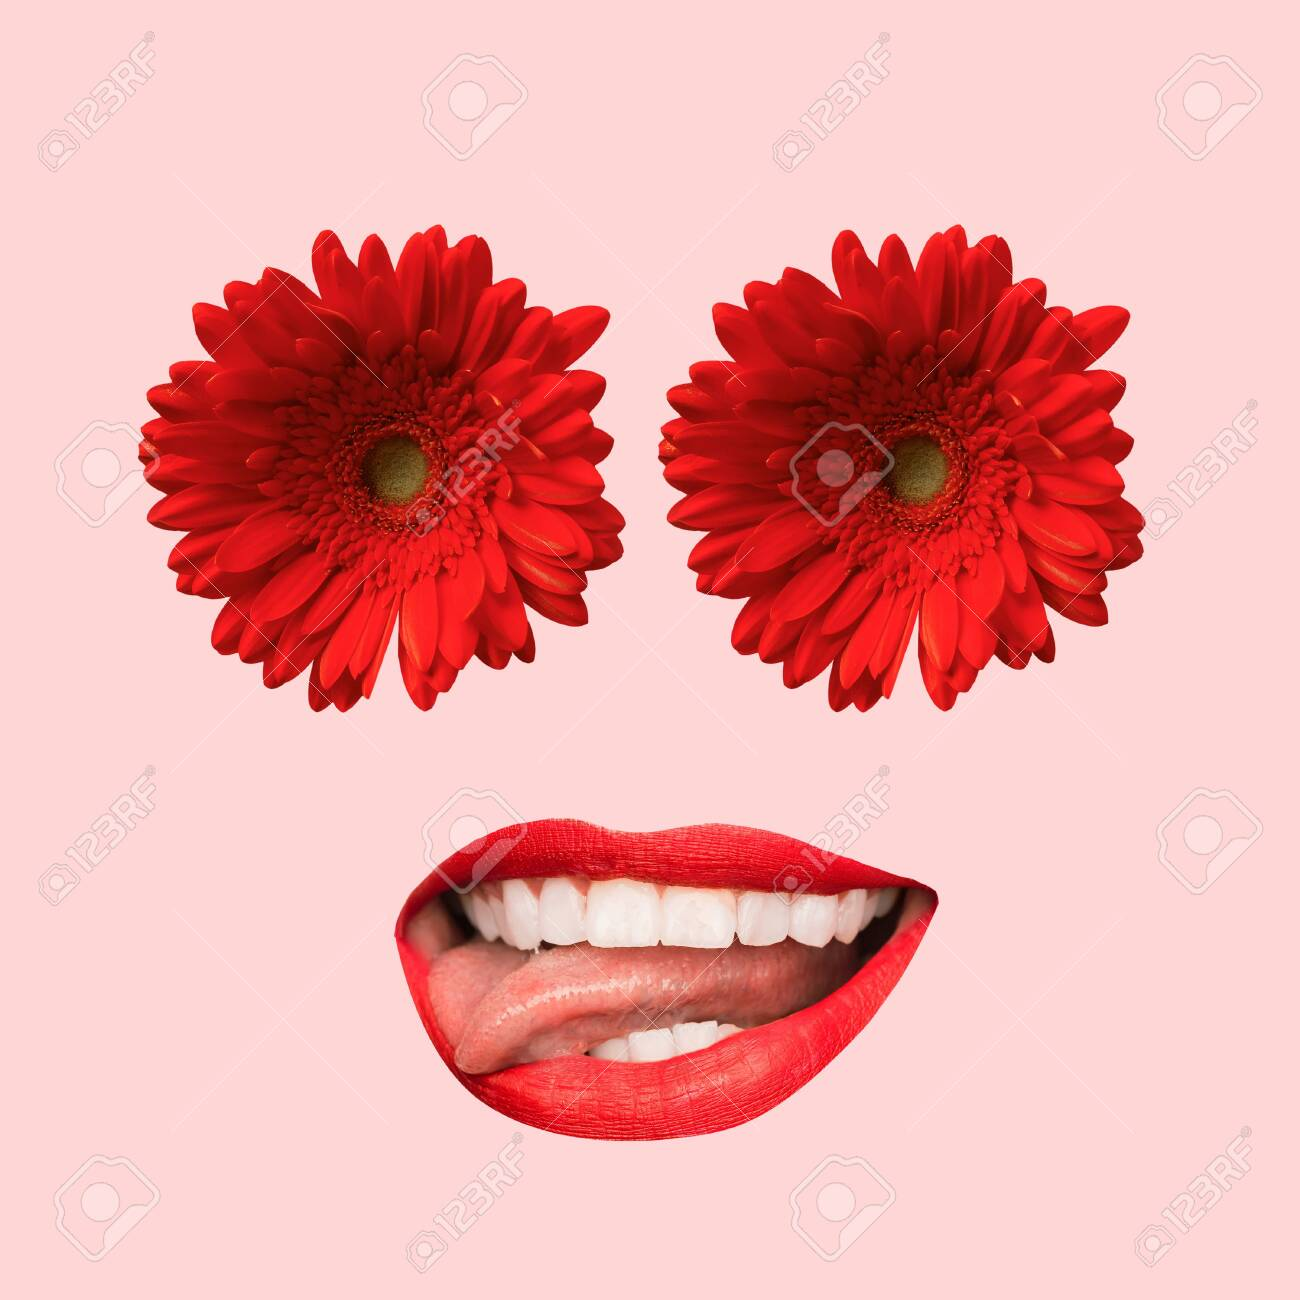 Female face with big red mouth and eyes as a flowers on coral..